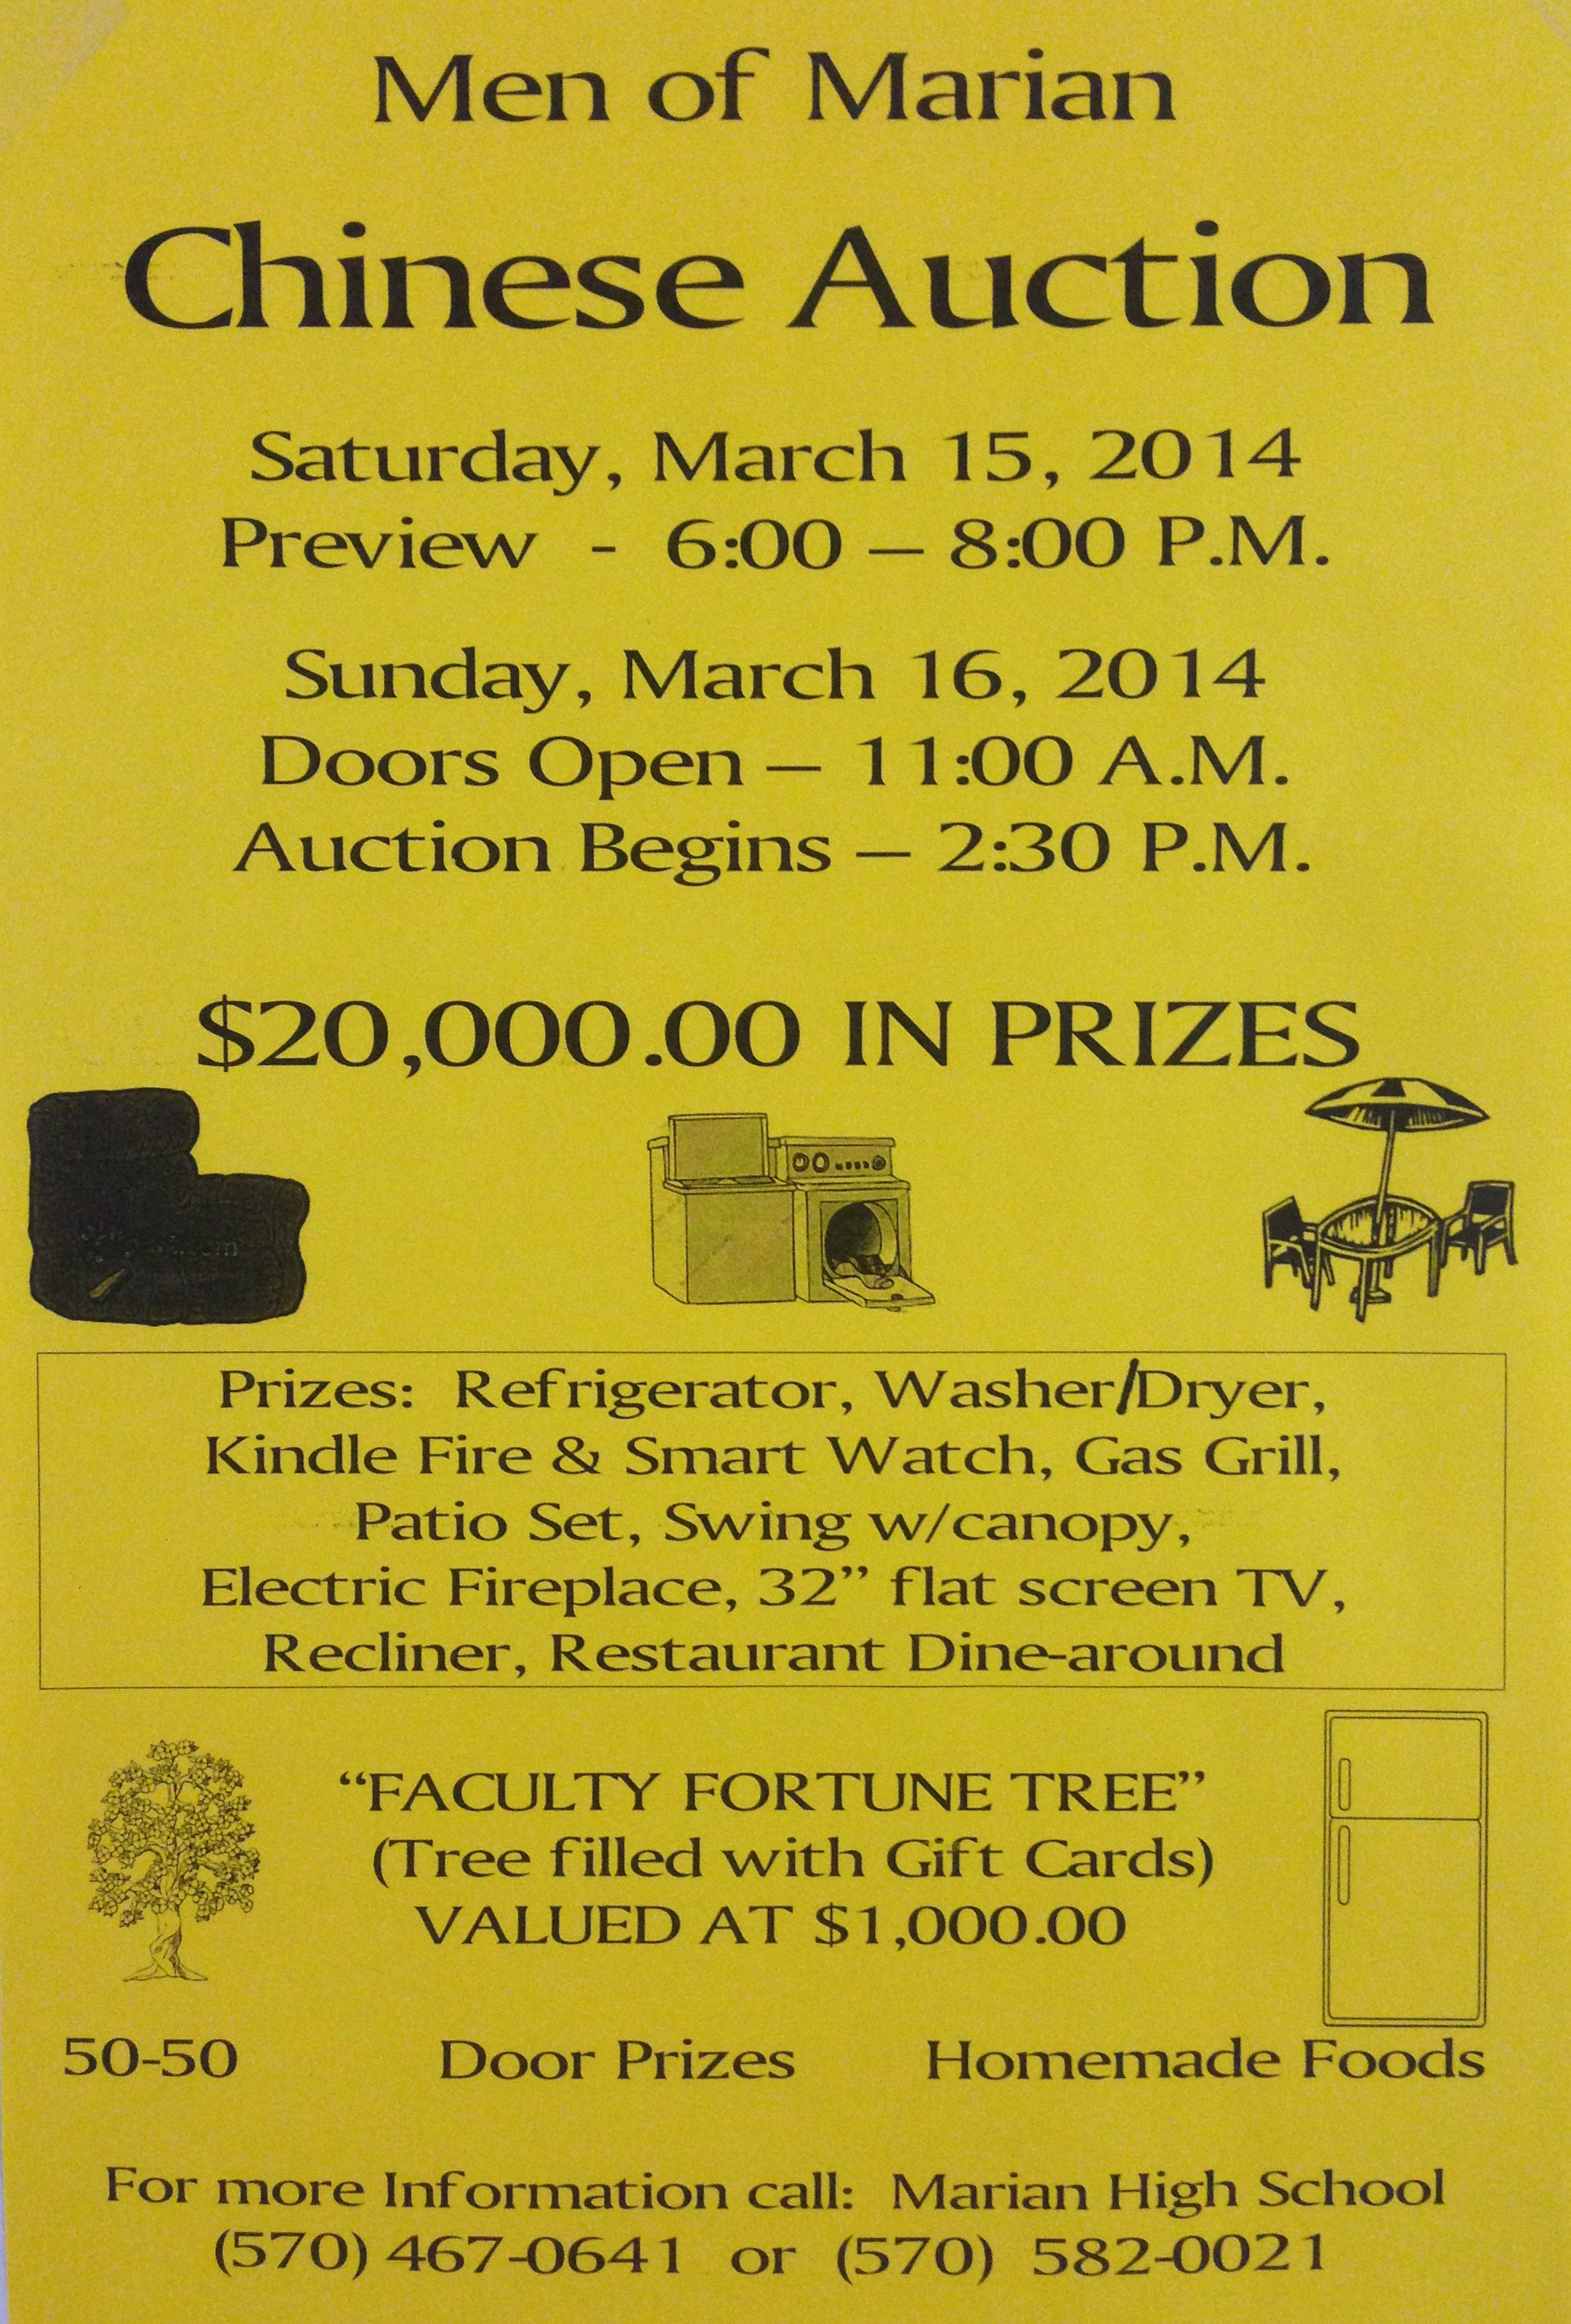 Men of Marian Chinese Auction flyer ...